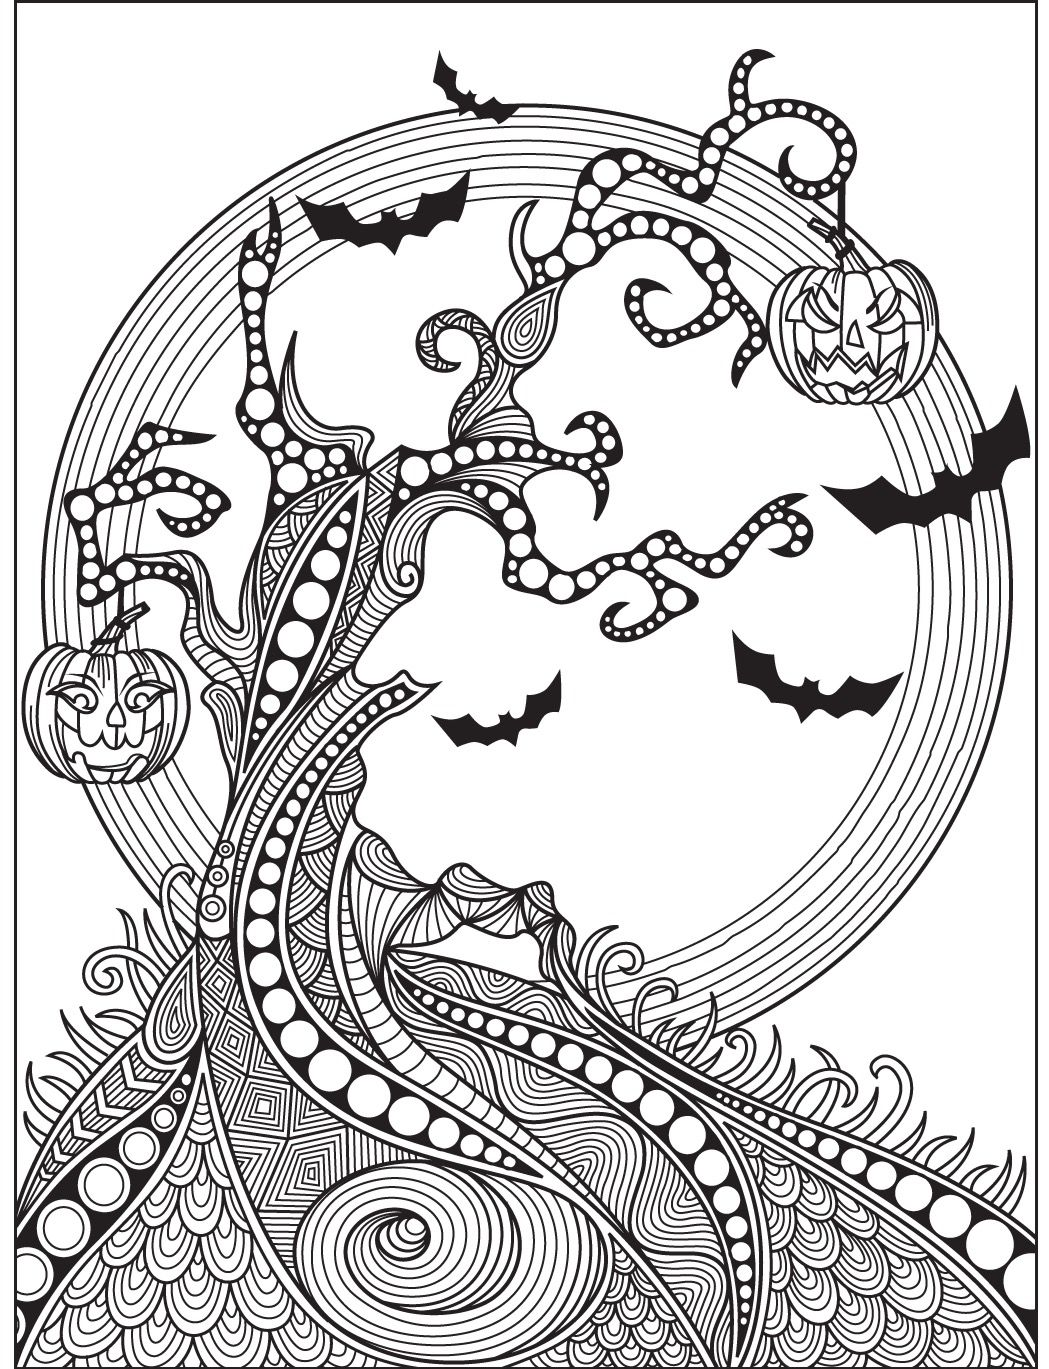 Halloween Coloring Page Colorish Free Coloring App For Adults